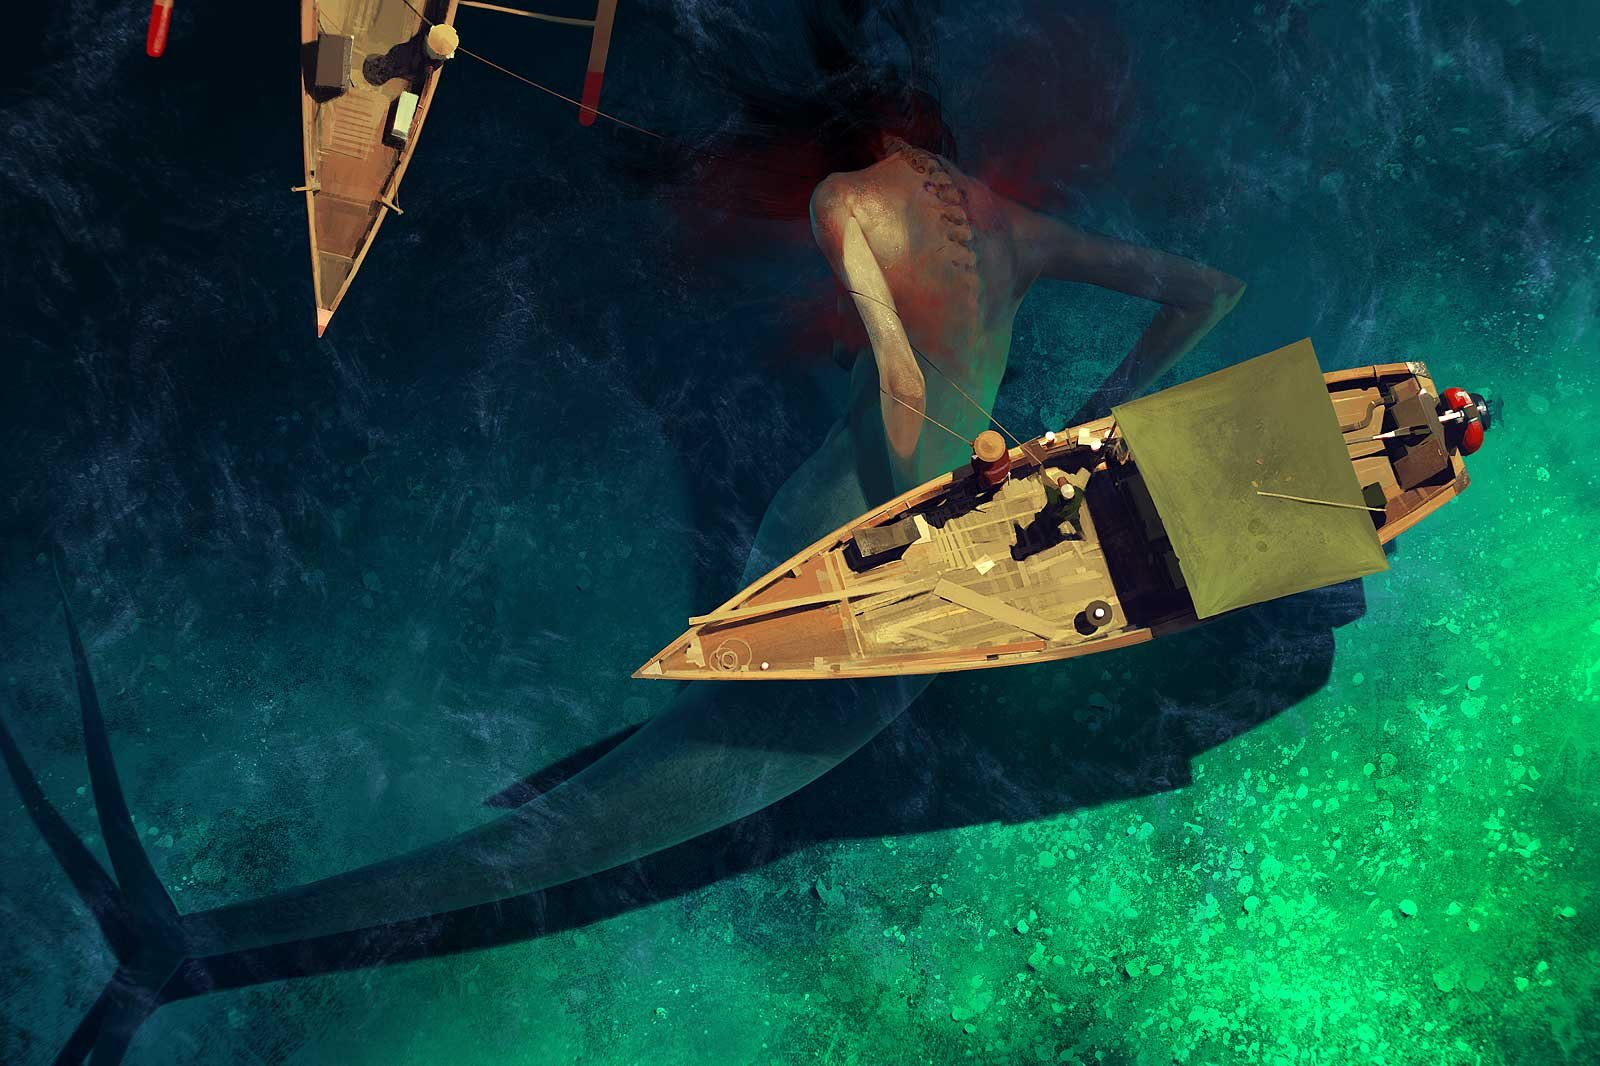 Sergey Kolesov Digital Painting Illustration Personal Work Big Mermaid